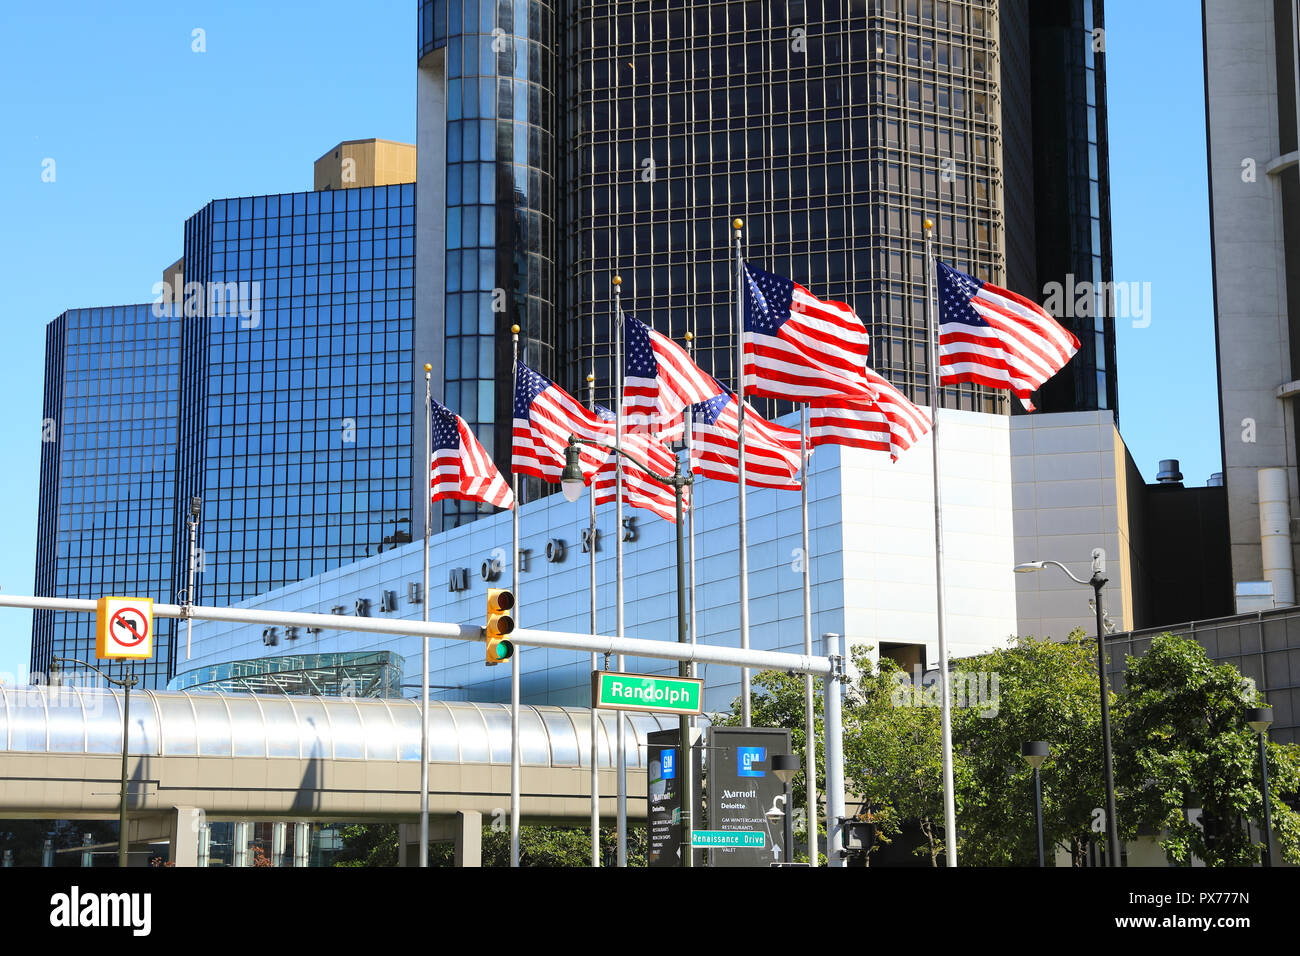 The General Motor's HQ on the Riverfront in Detroit, part of the Renaissance Centre, in Michigan, in the USA - Stock Image